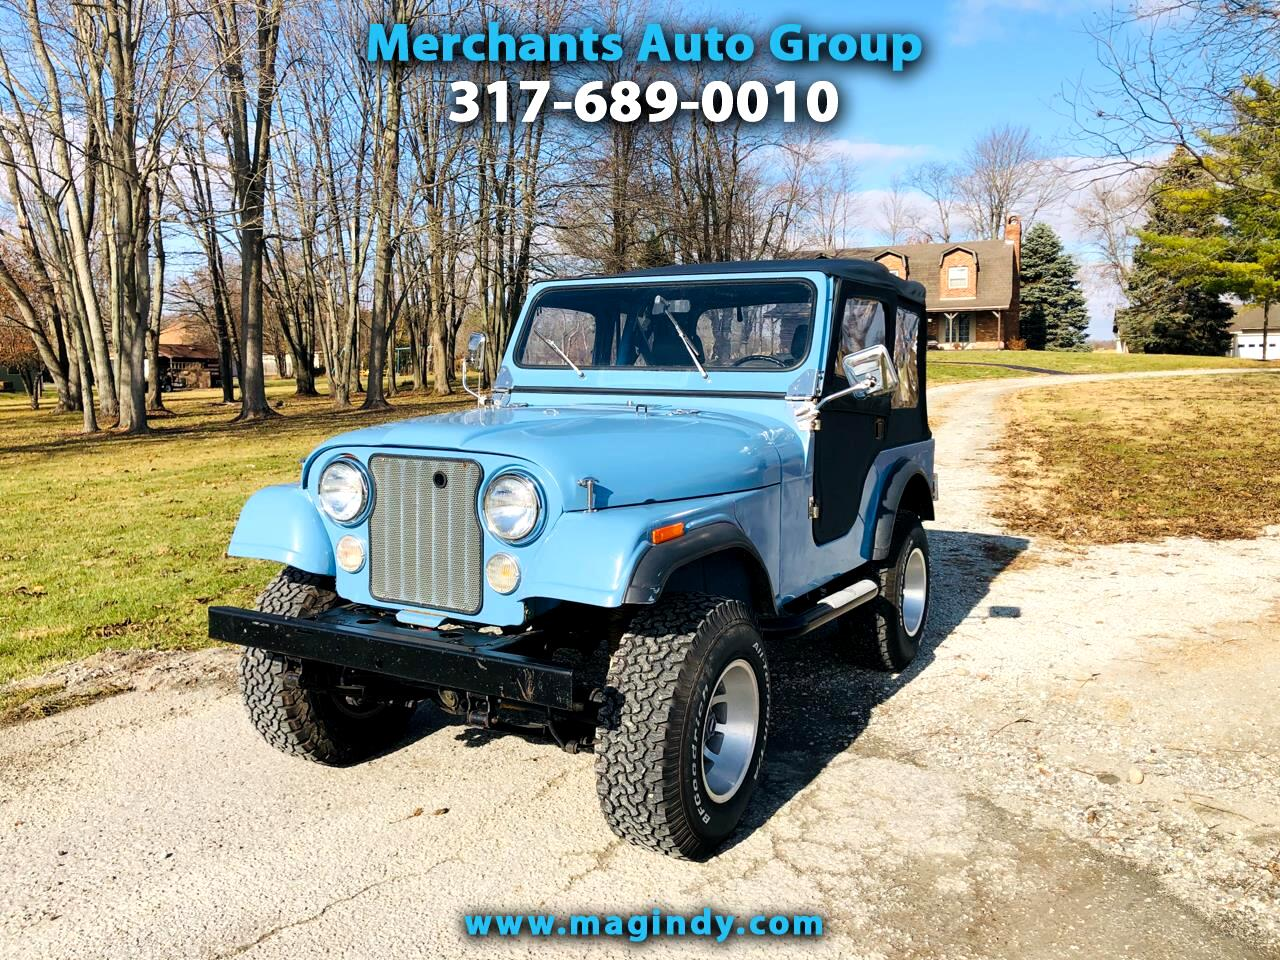 1980 Jeep CJ-5 2dr Soft Top 4WD